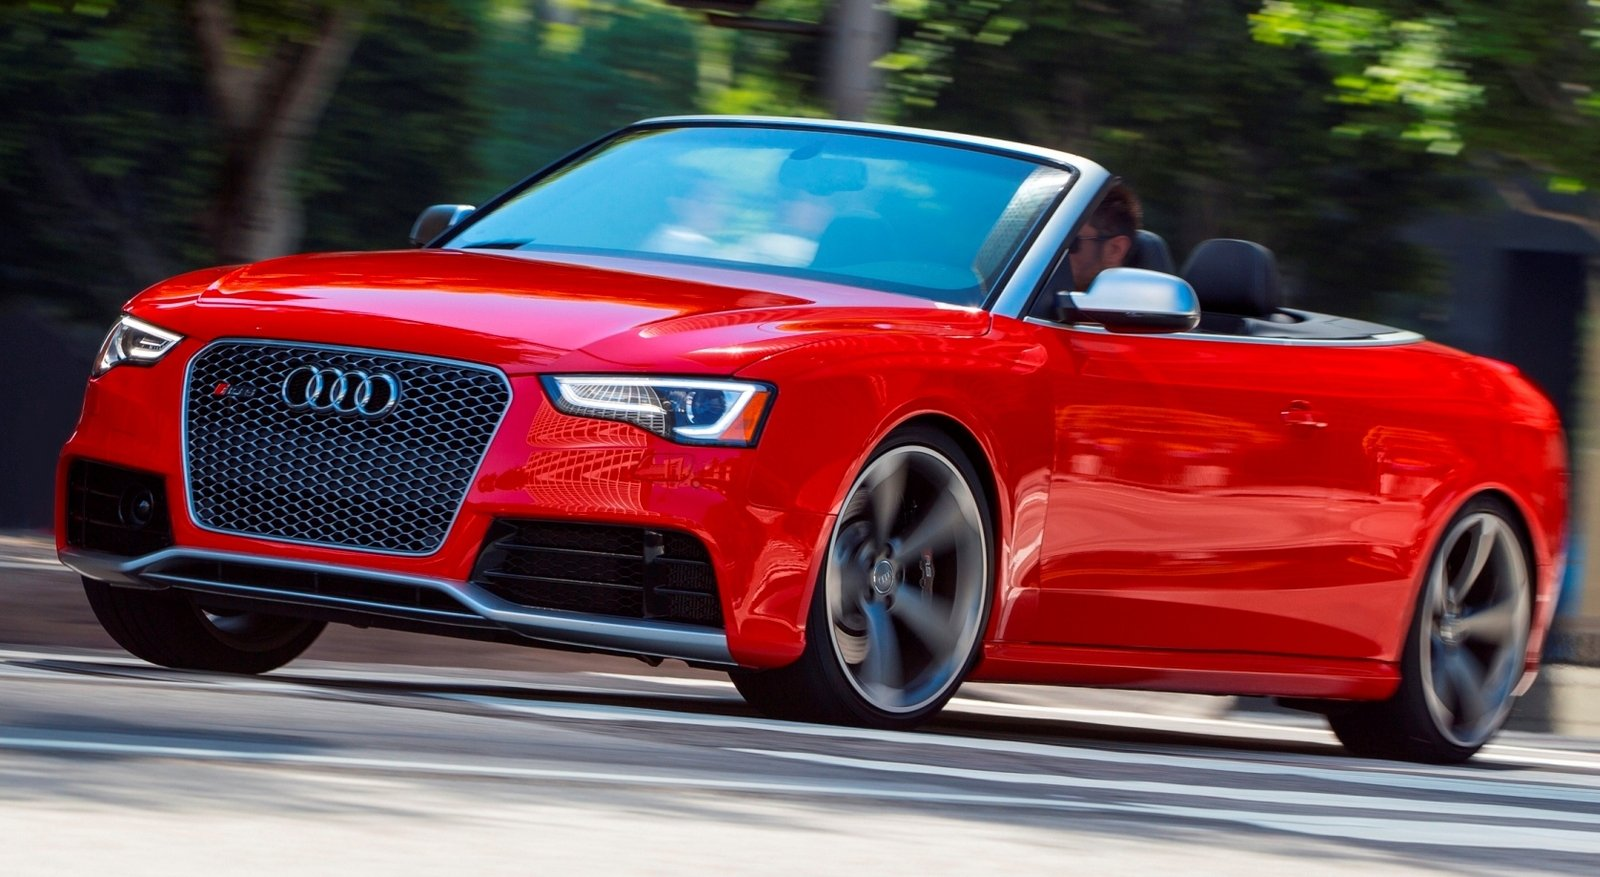 2014 Audi Rs5 Cabriolet Top Speed